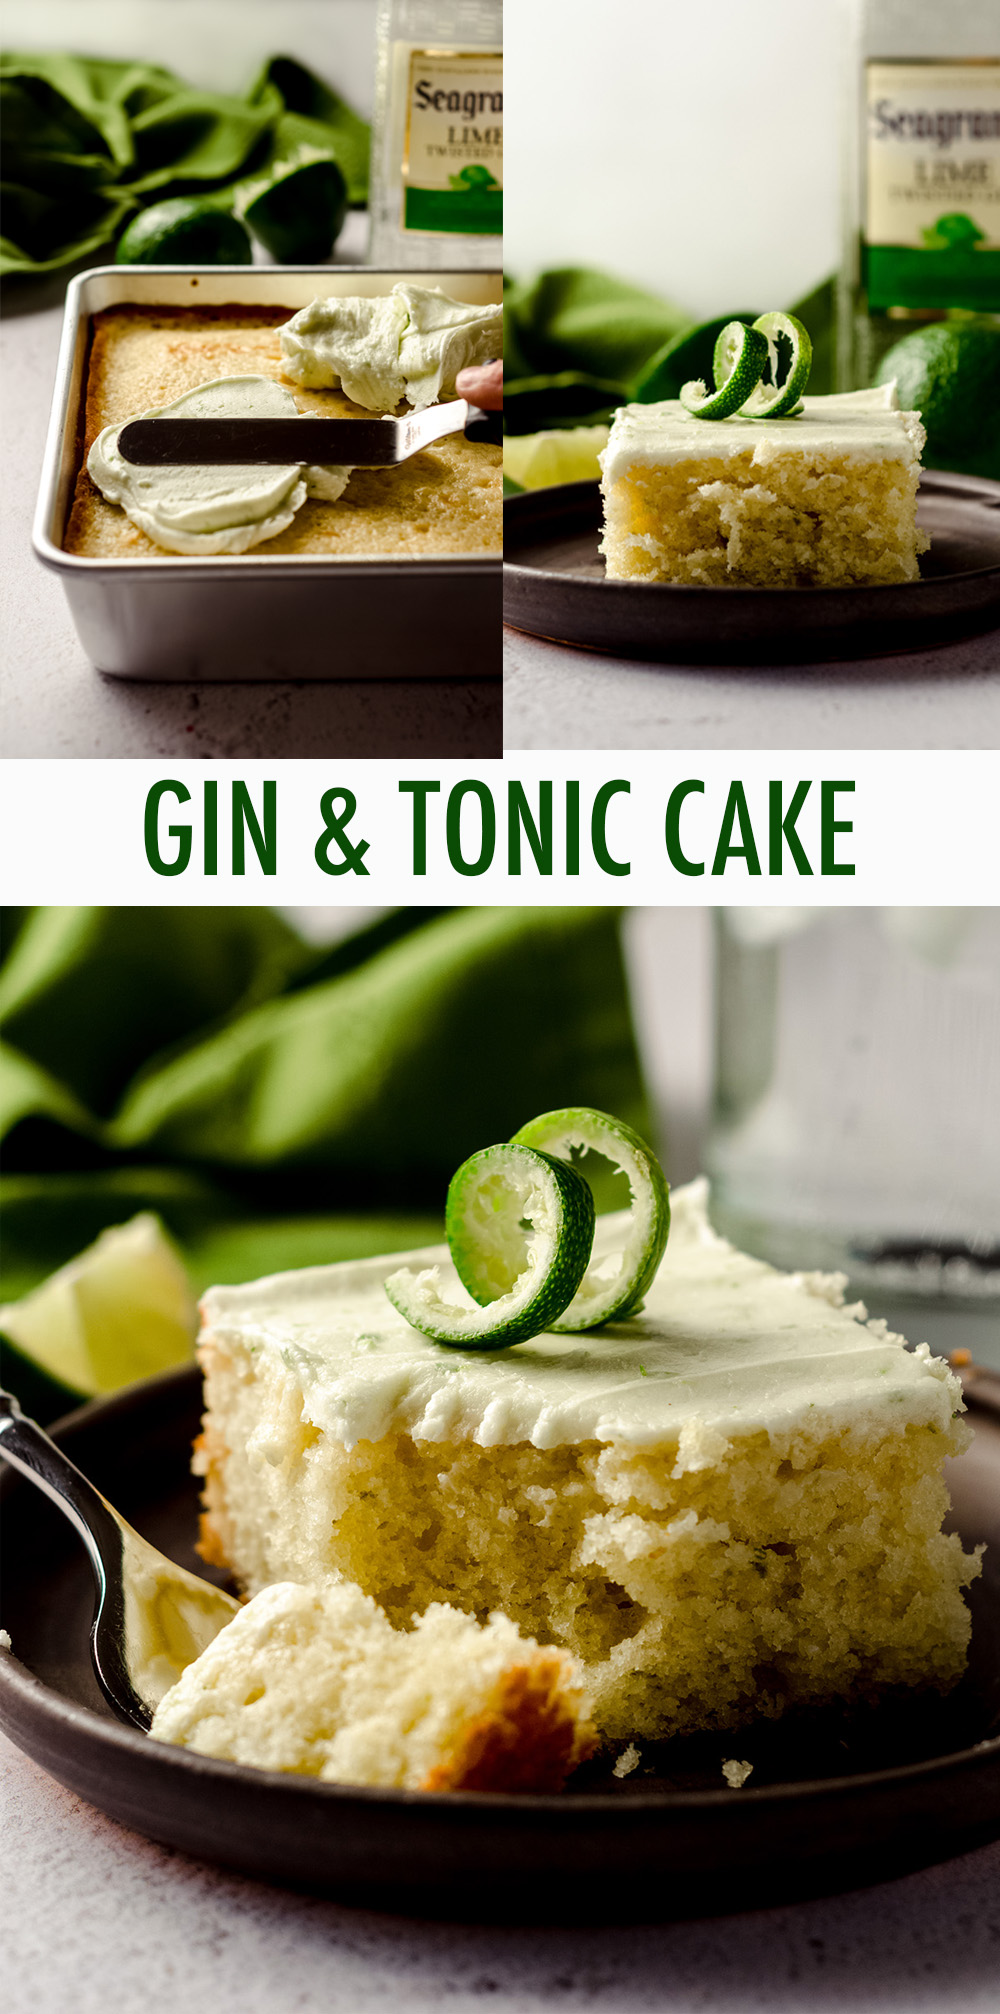 A moist and flavorful lime cake soaked in a gin syrup and slathered with a boozy, lime frosting.